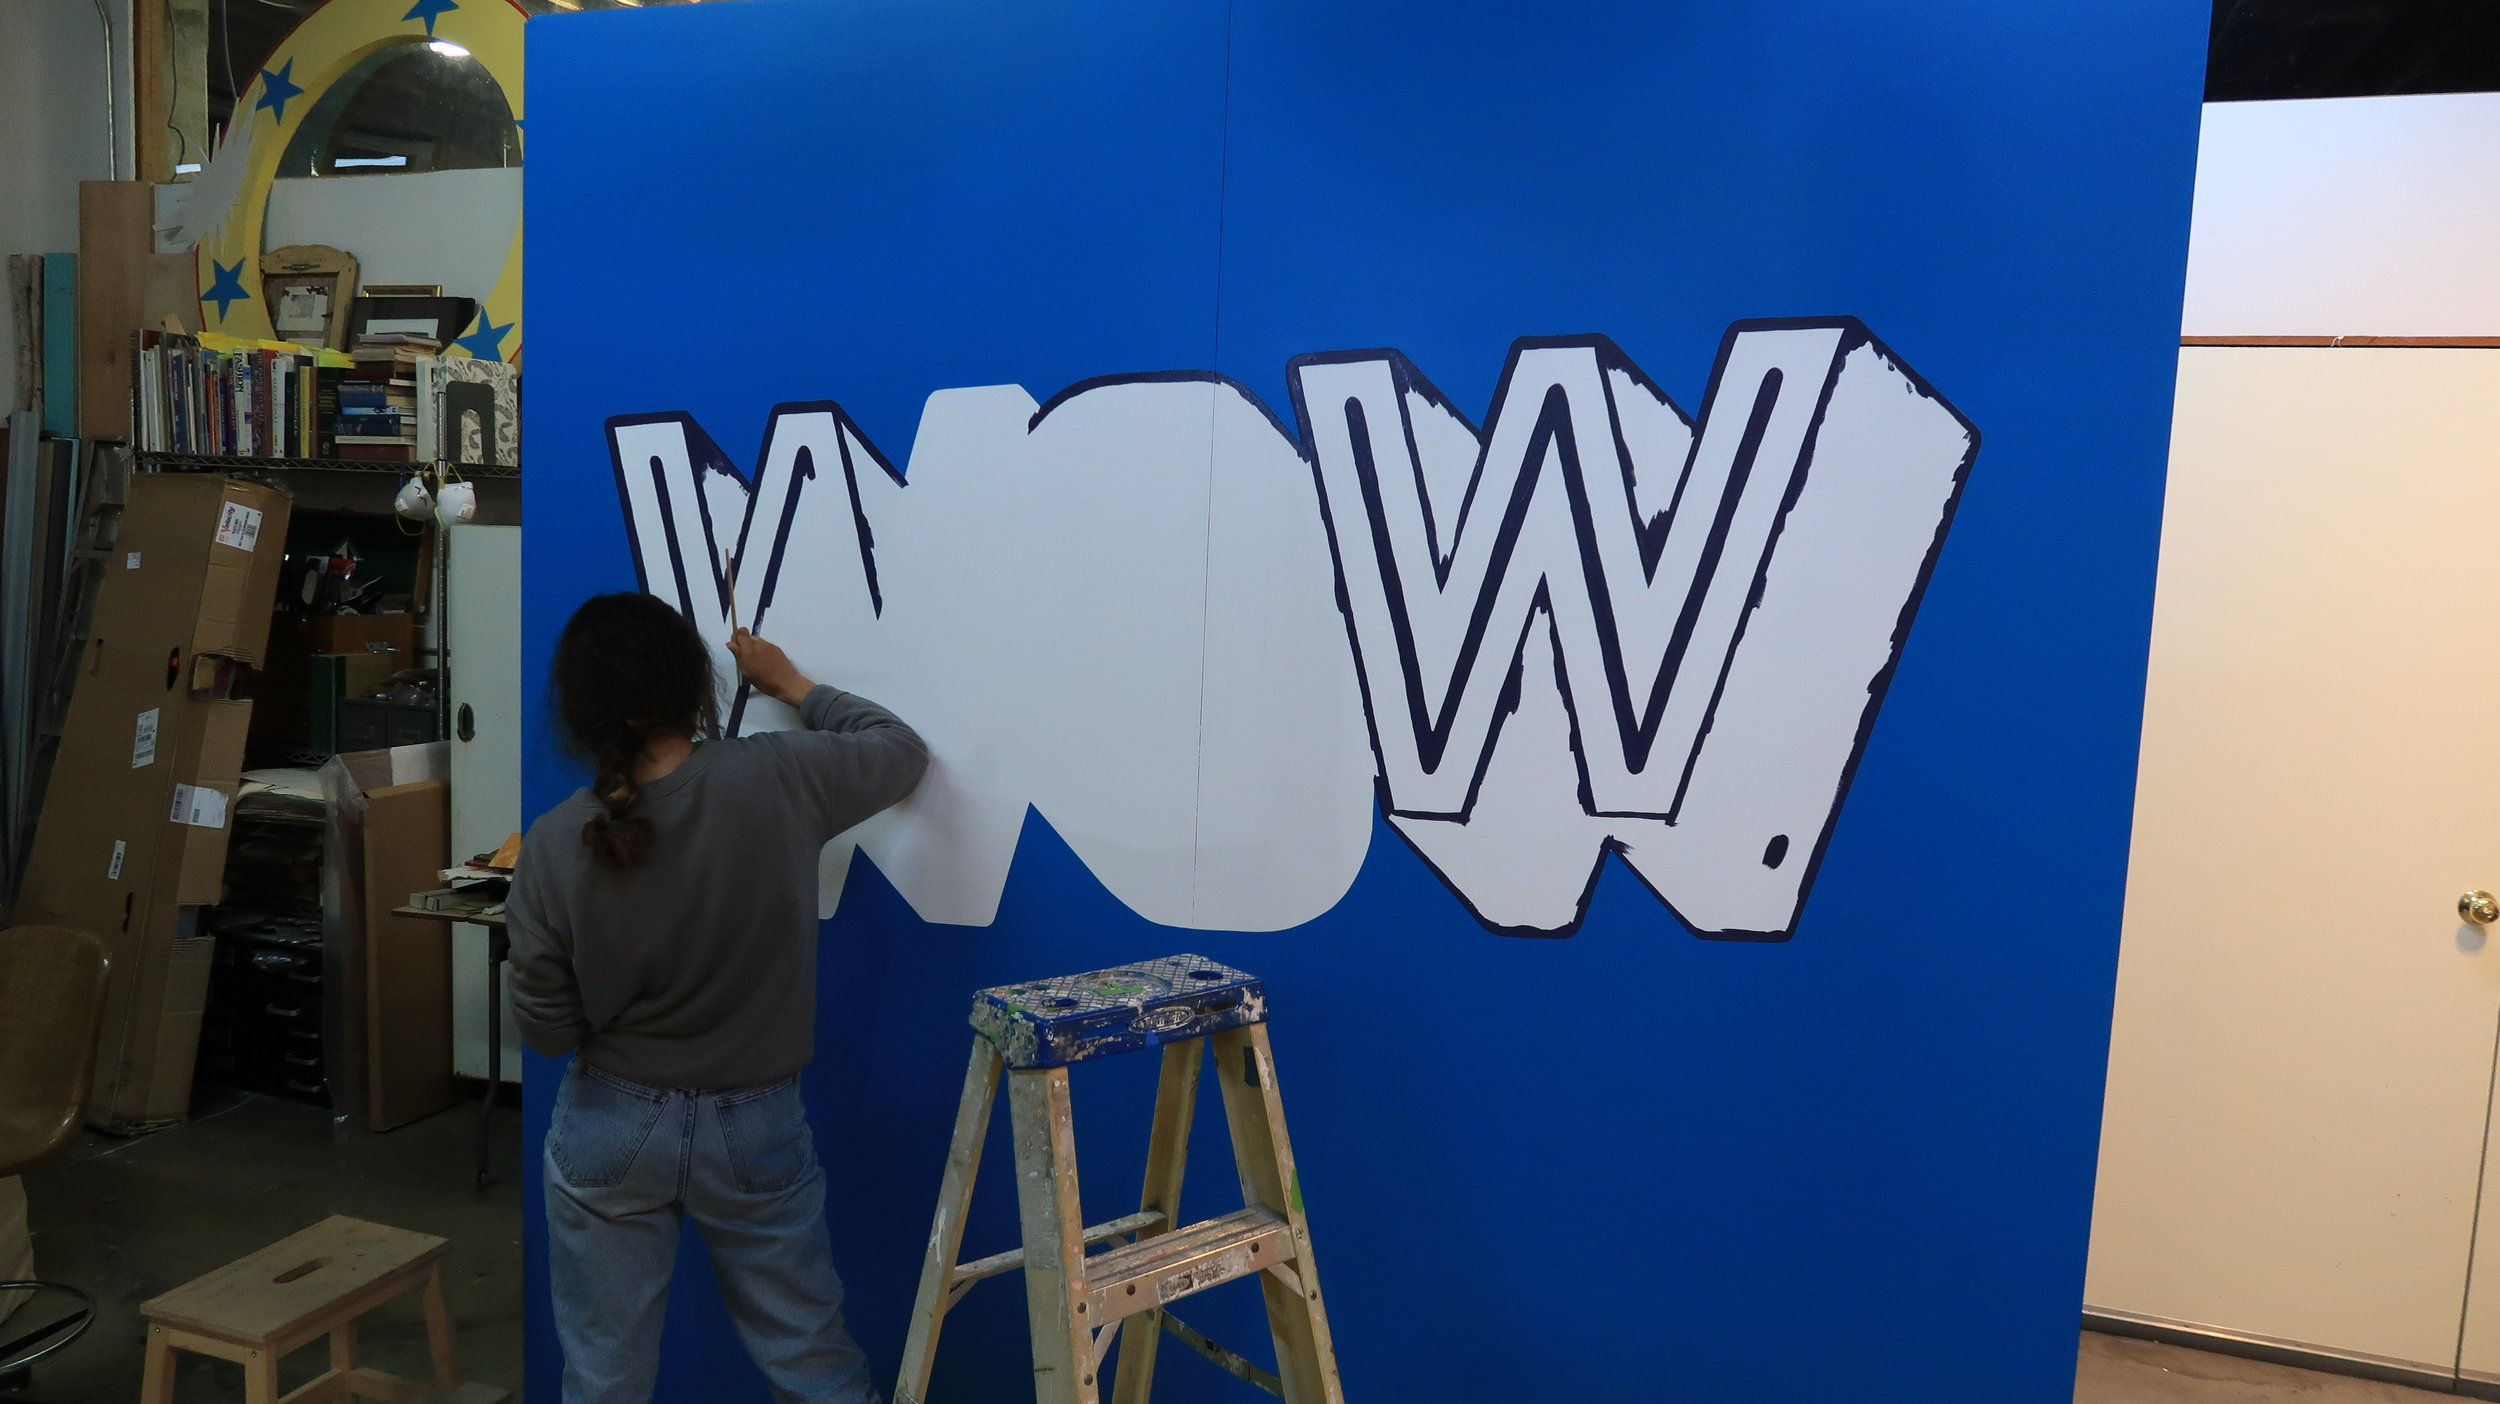 Event-mural-interactive-san-francisco-bare-conductive-wall-and-wall-mural-company_002.JPG